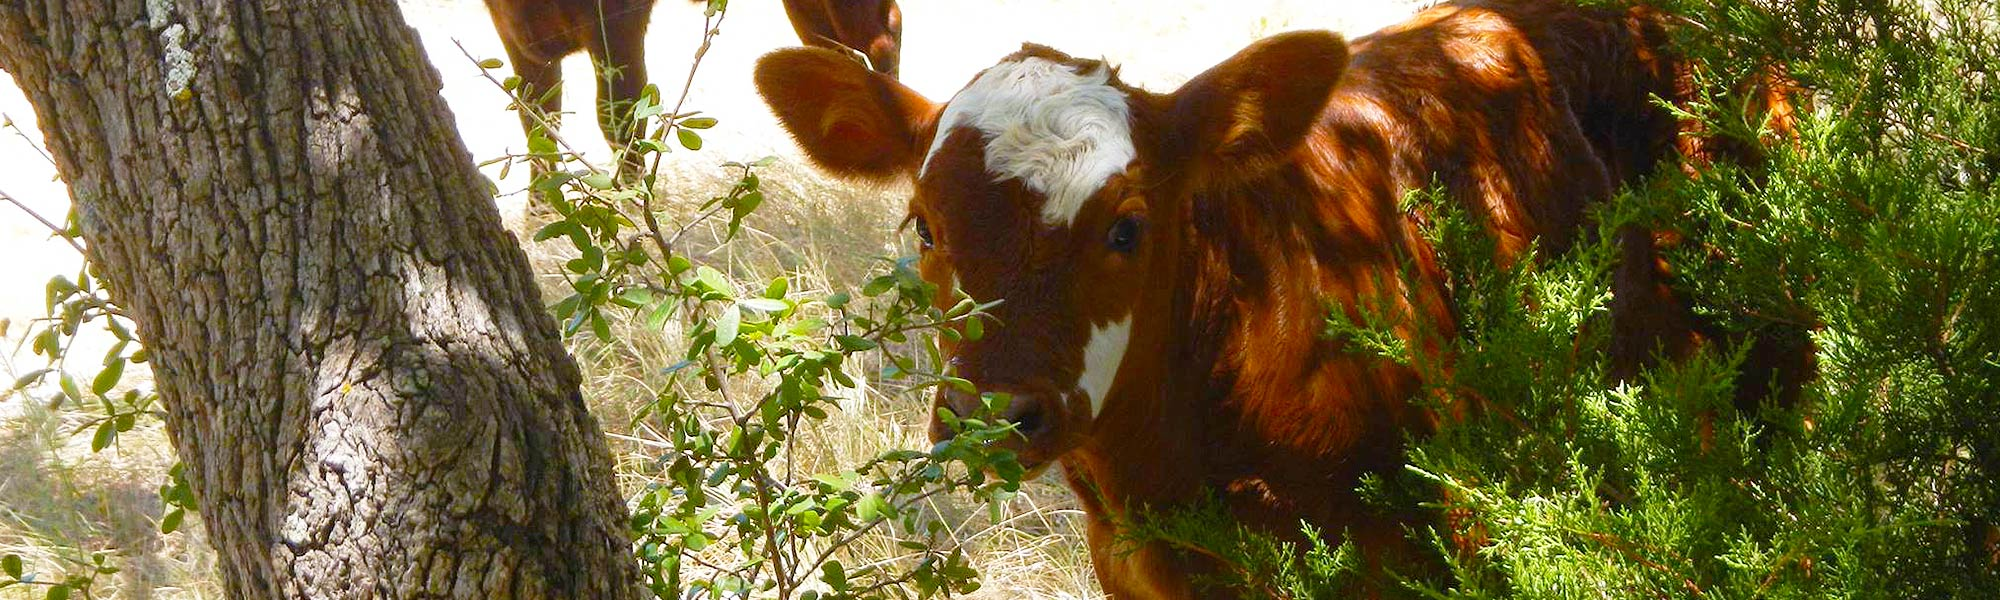 A top-quality organic cattle ranch in Fredericksburg, TX